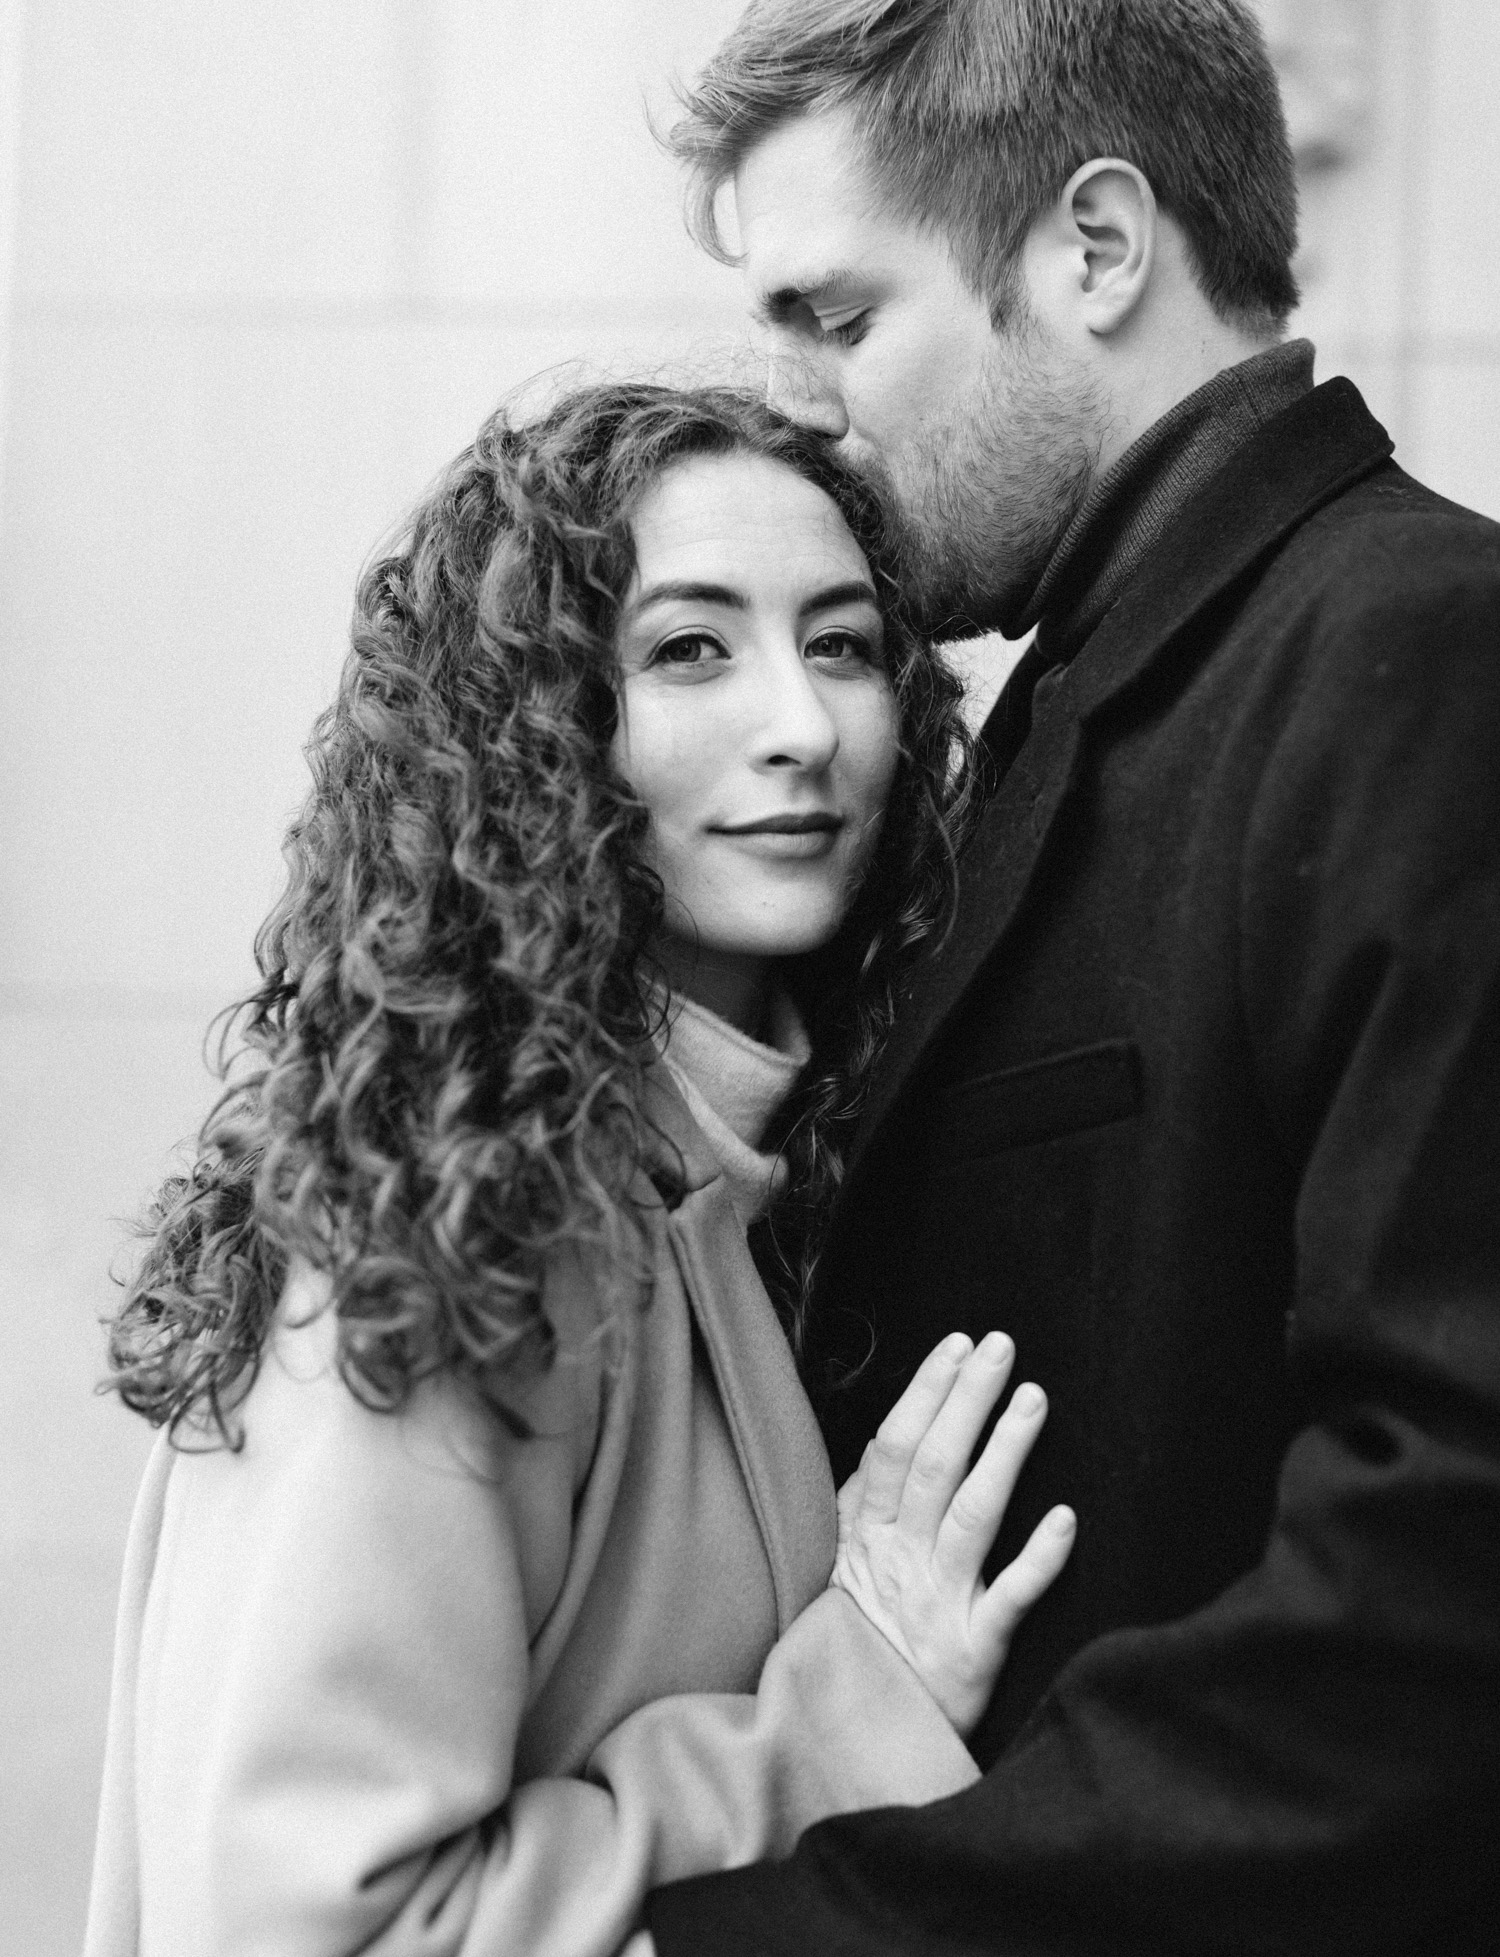 A woman with curly hair looks at the camera while embracing her love during their engagement session at the Masonic Temple in Detroit